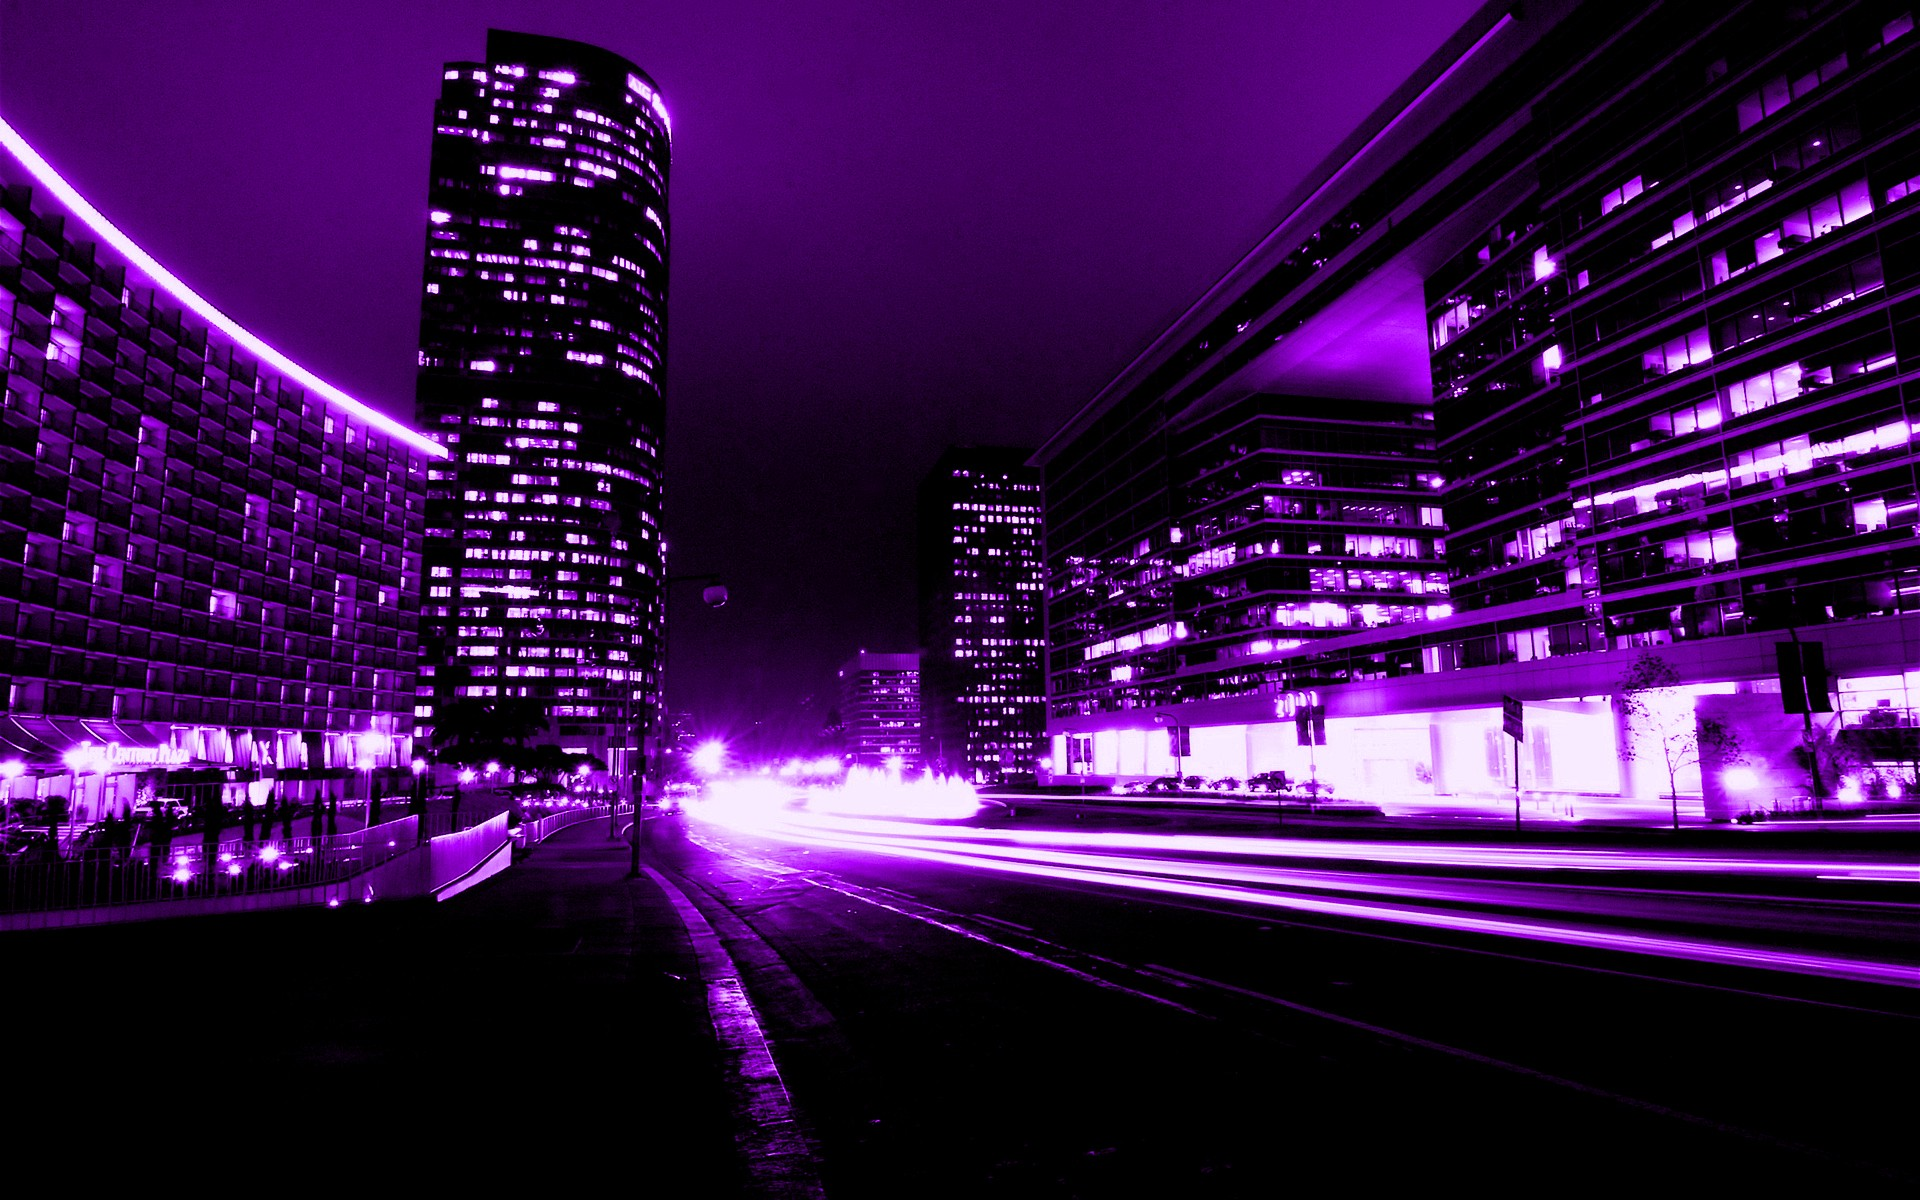 Purple And Black Wallpapers Widescreen